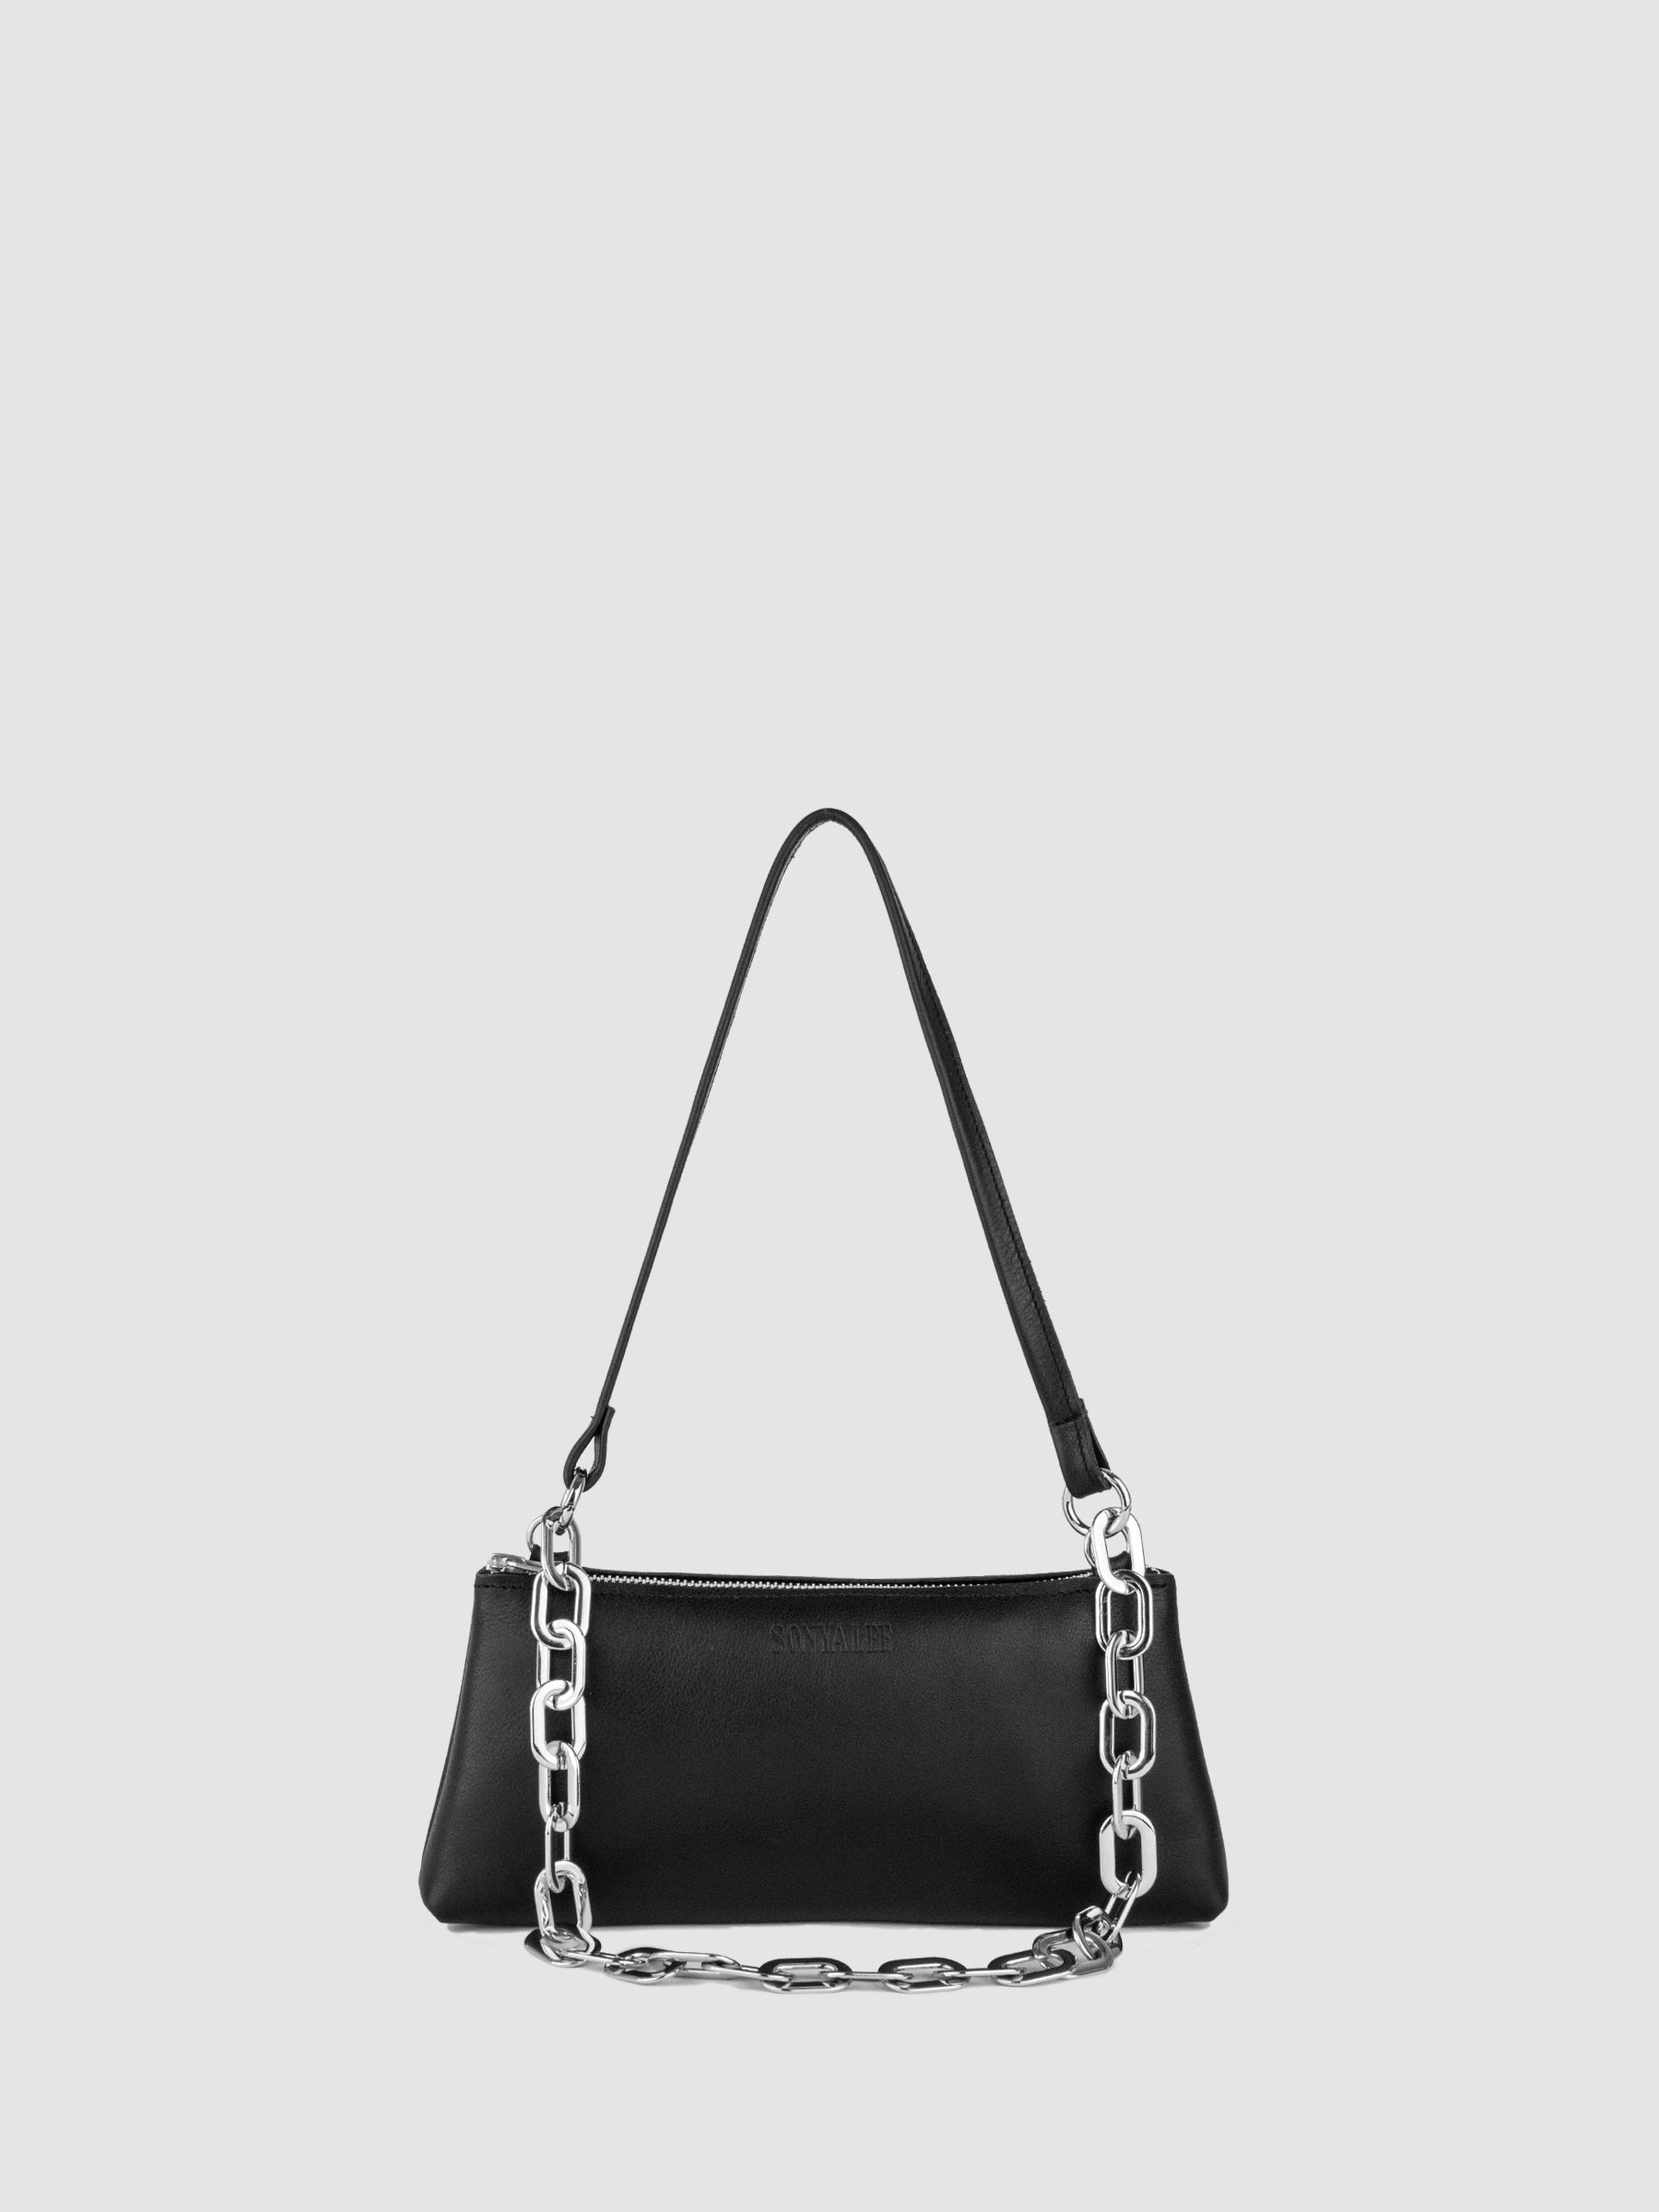 The SONYA LEE Maya mini bag in soft black leather with Oval chain . Ethically handmade in Canada using full grain leather. Lifetime warranty. Fits all the essentials. Zipper Closure. Leather and chain shoulder strap. Free shipping across Canada.